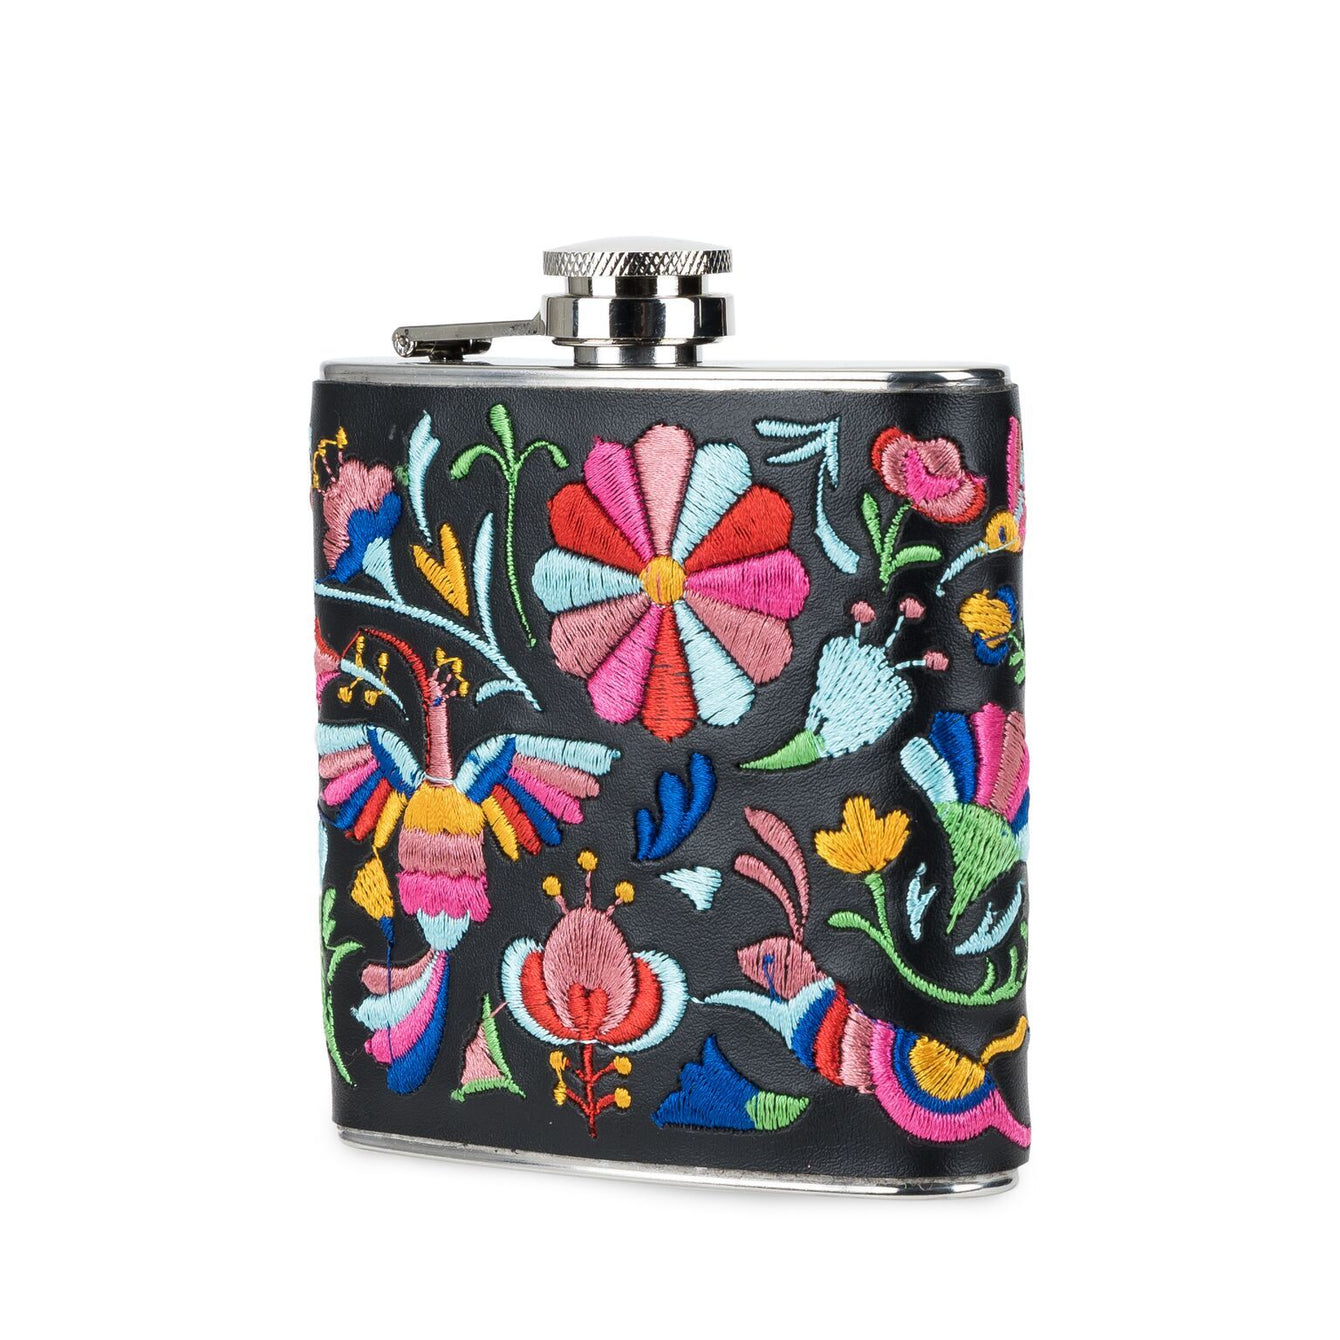 Salina Embroidered Flask-Home - Travel + Outdoors - Flasks + Growlers-BLUSH-Peccadilly